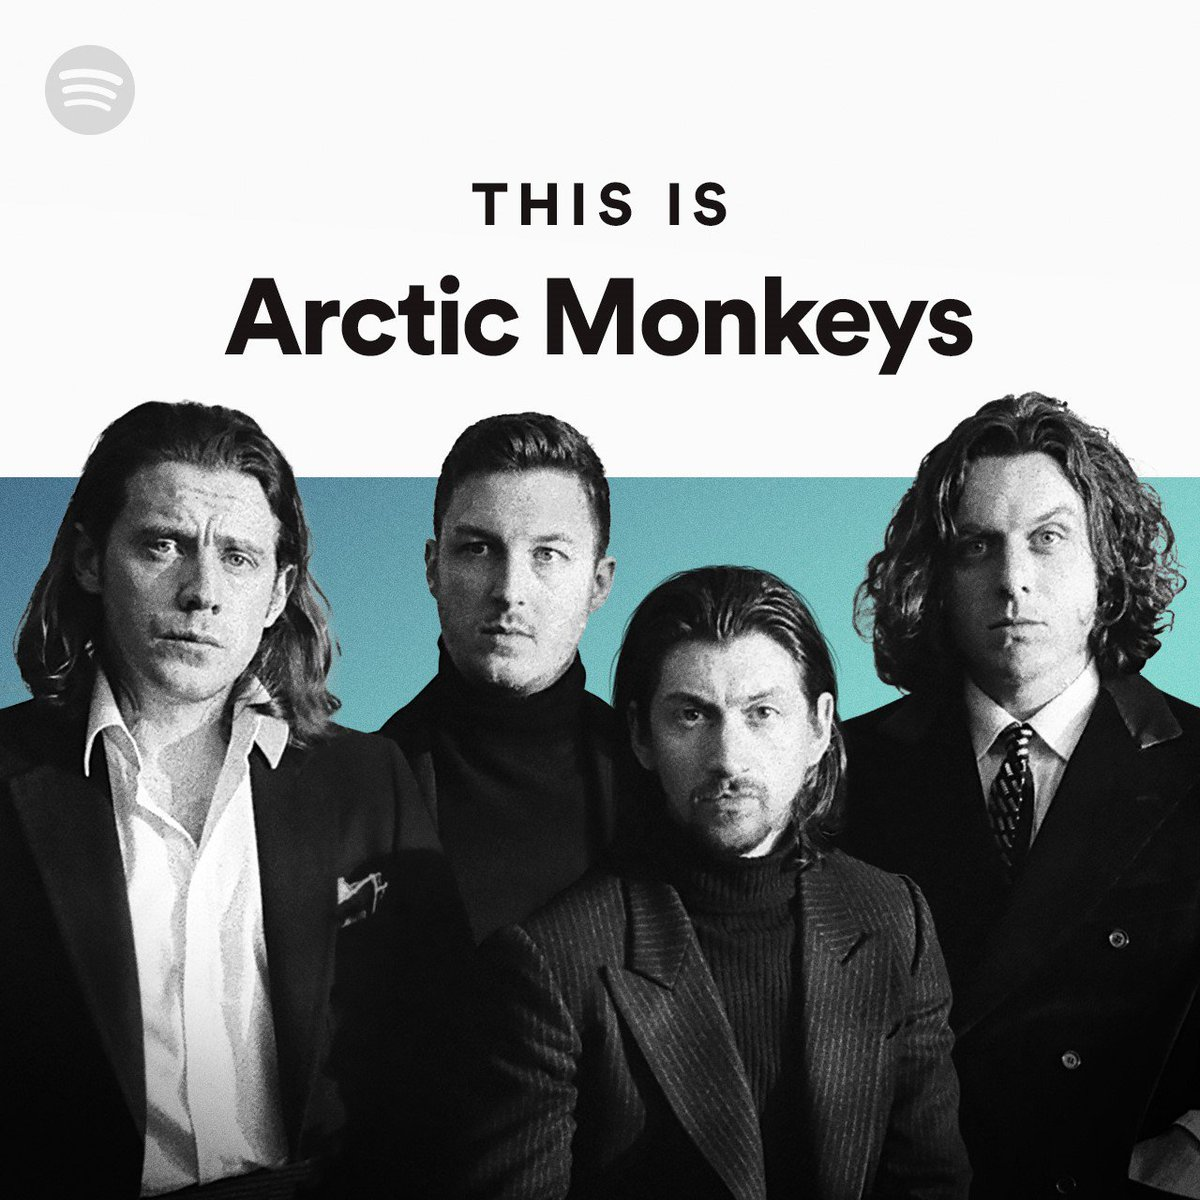 This Is Arctic Monkeys. Listen to the band's biggest tracks in one place on @Spotify here: https://t.co/6M9Mmny5Zz https://t.co/j6skTchEDv